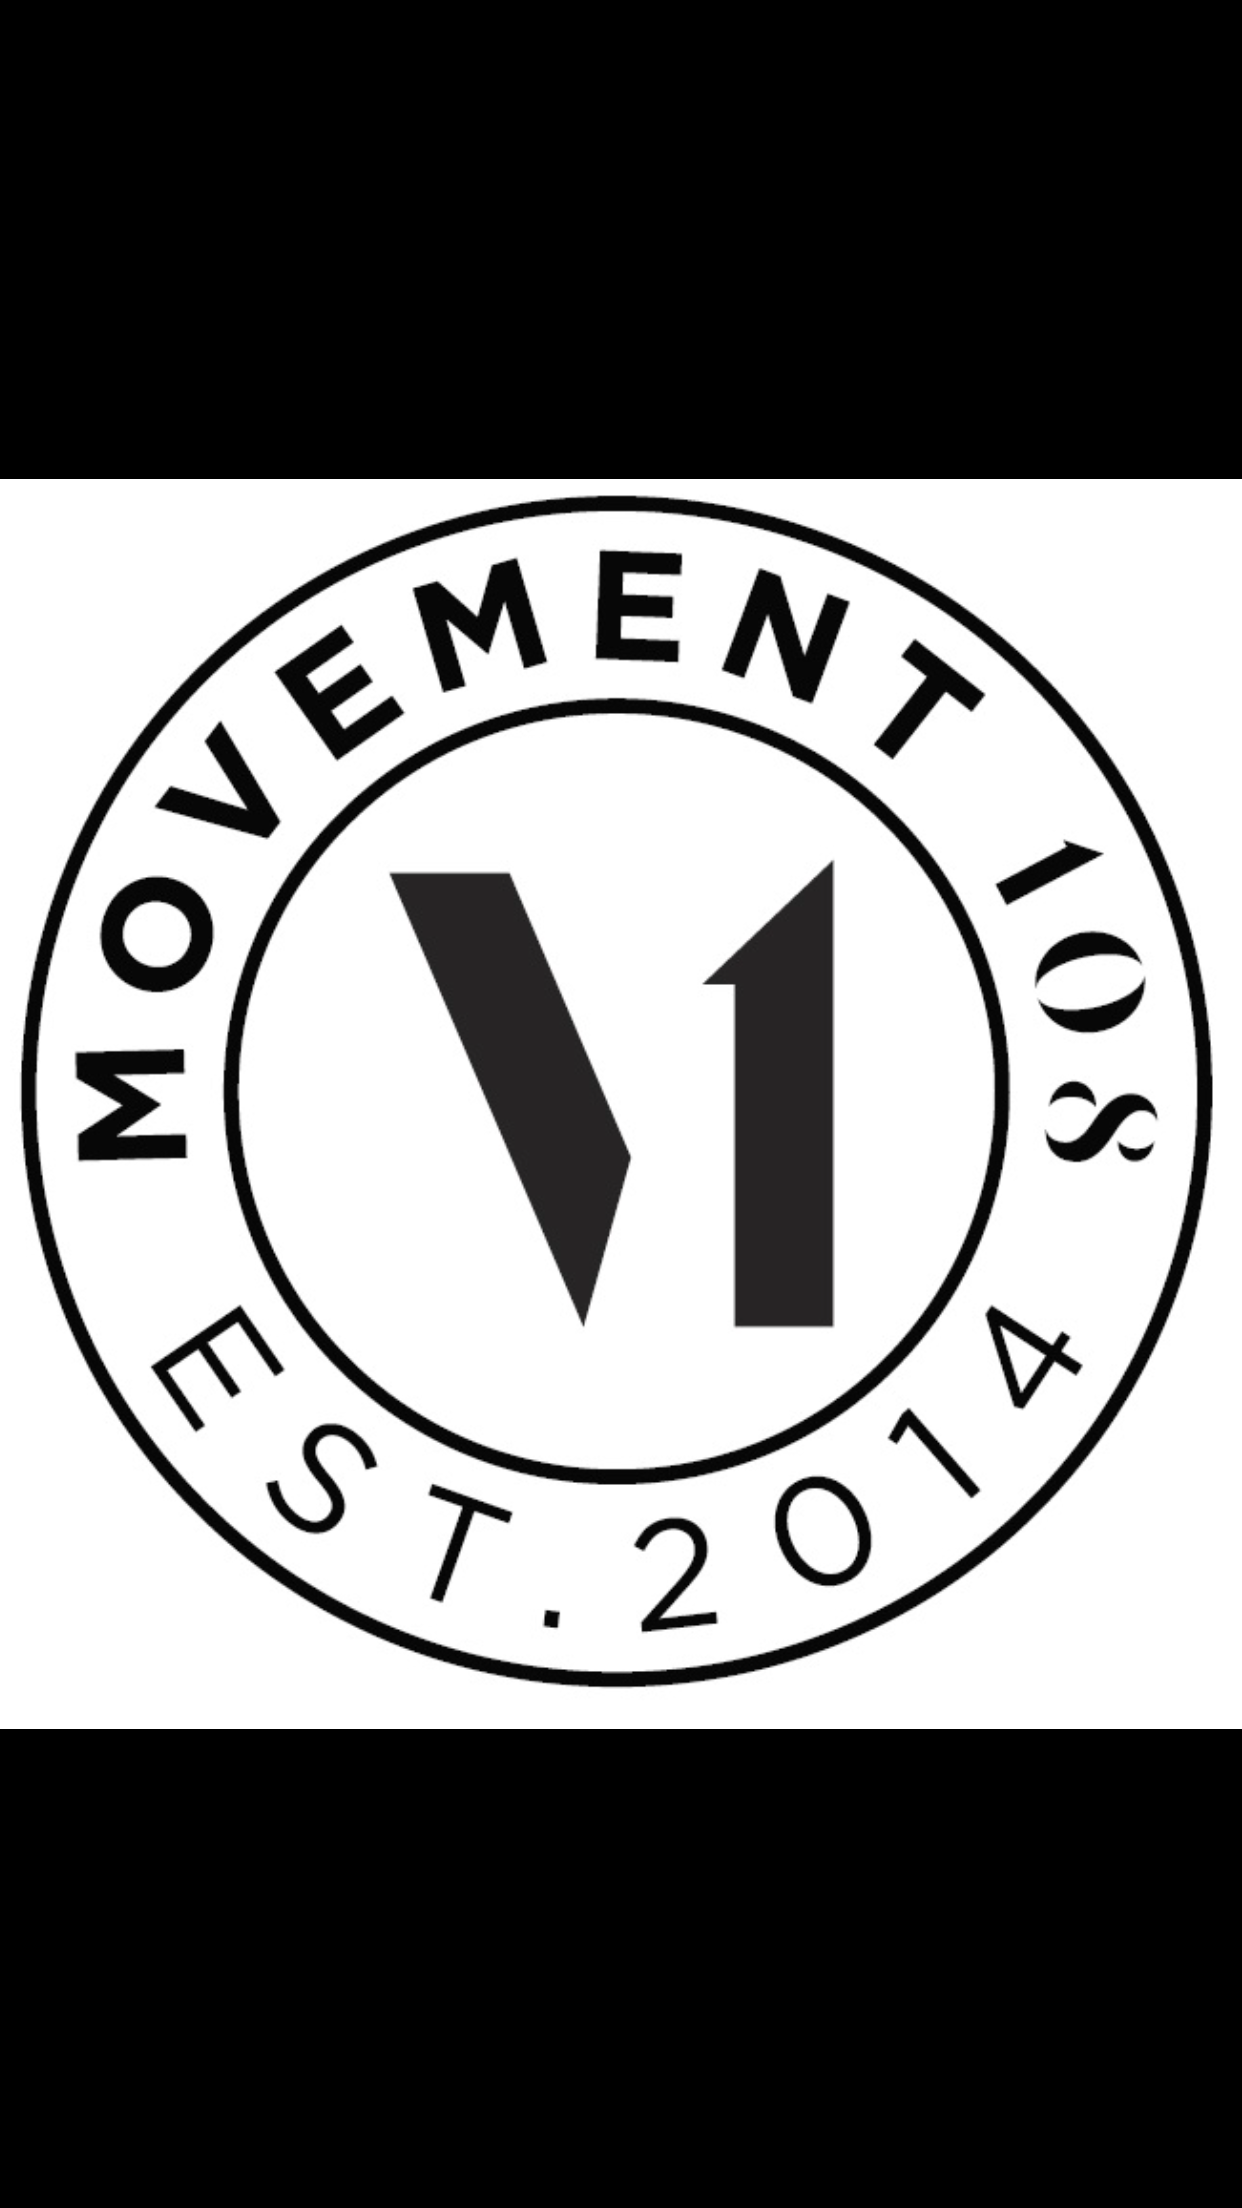 Movement 108